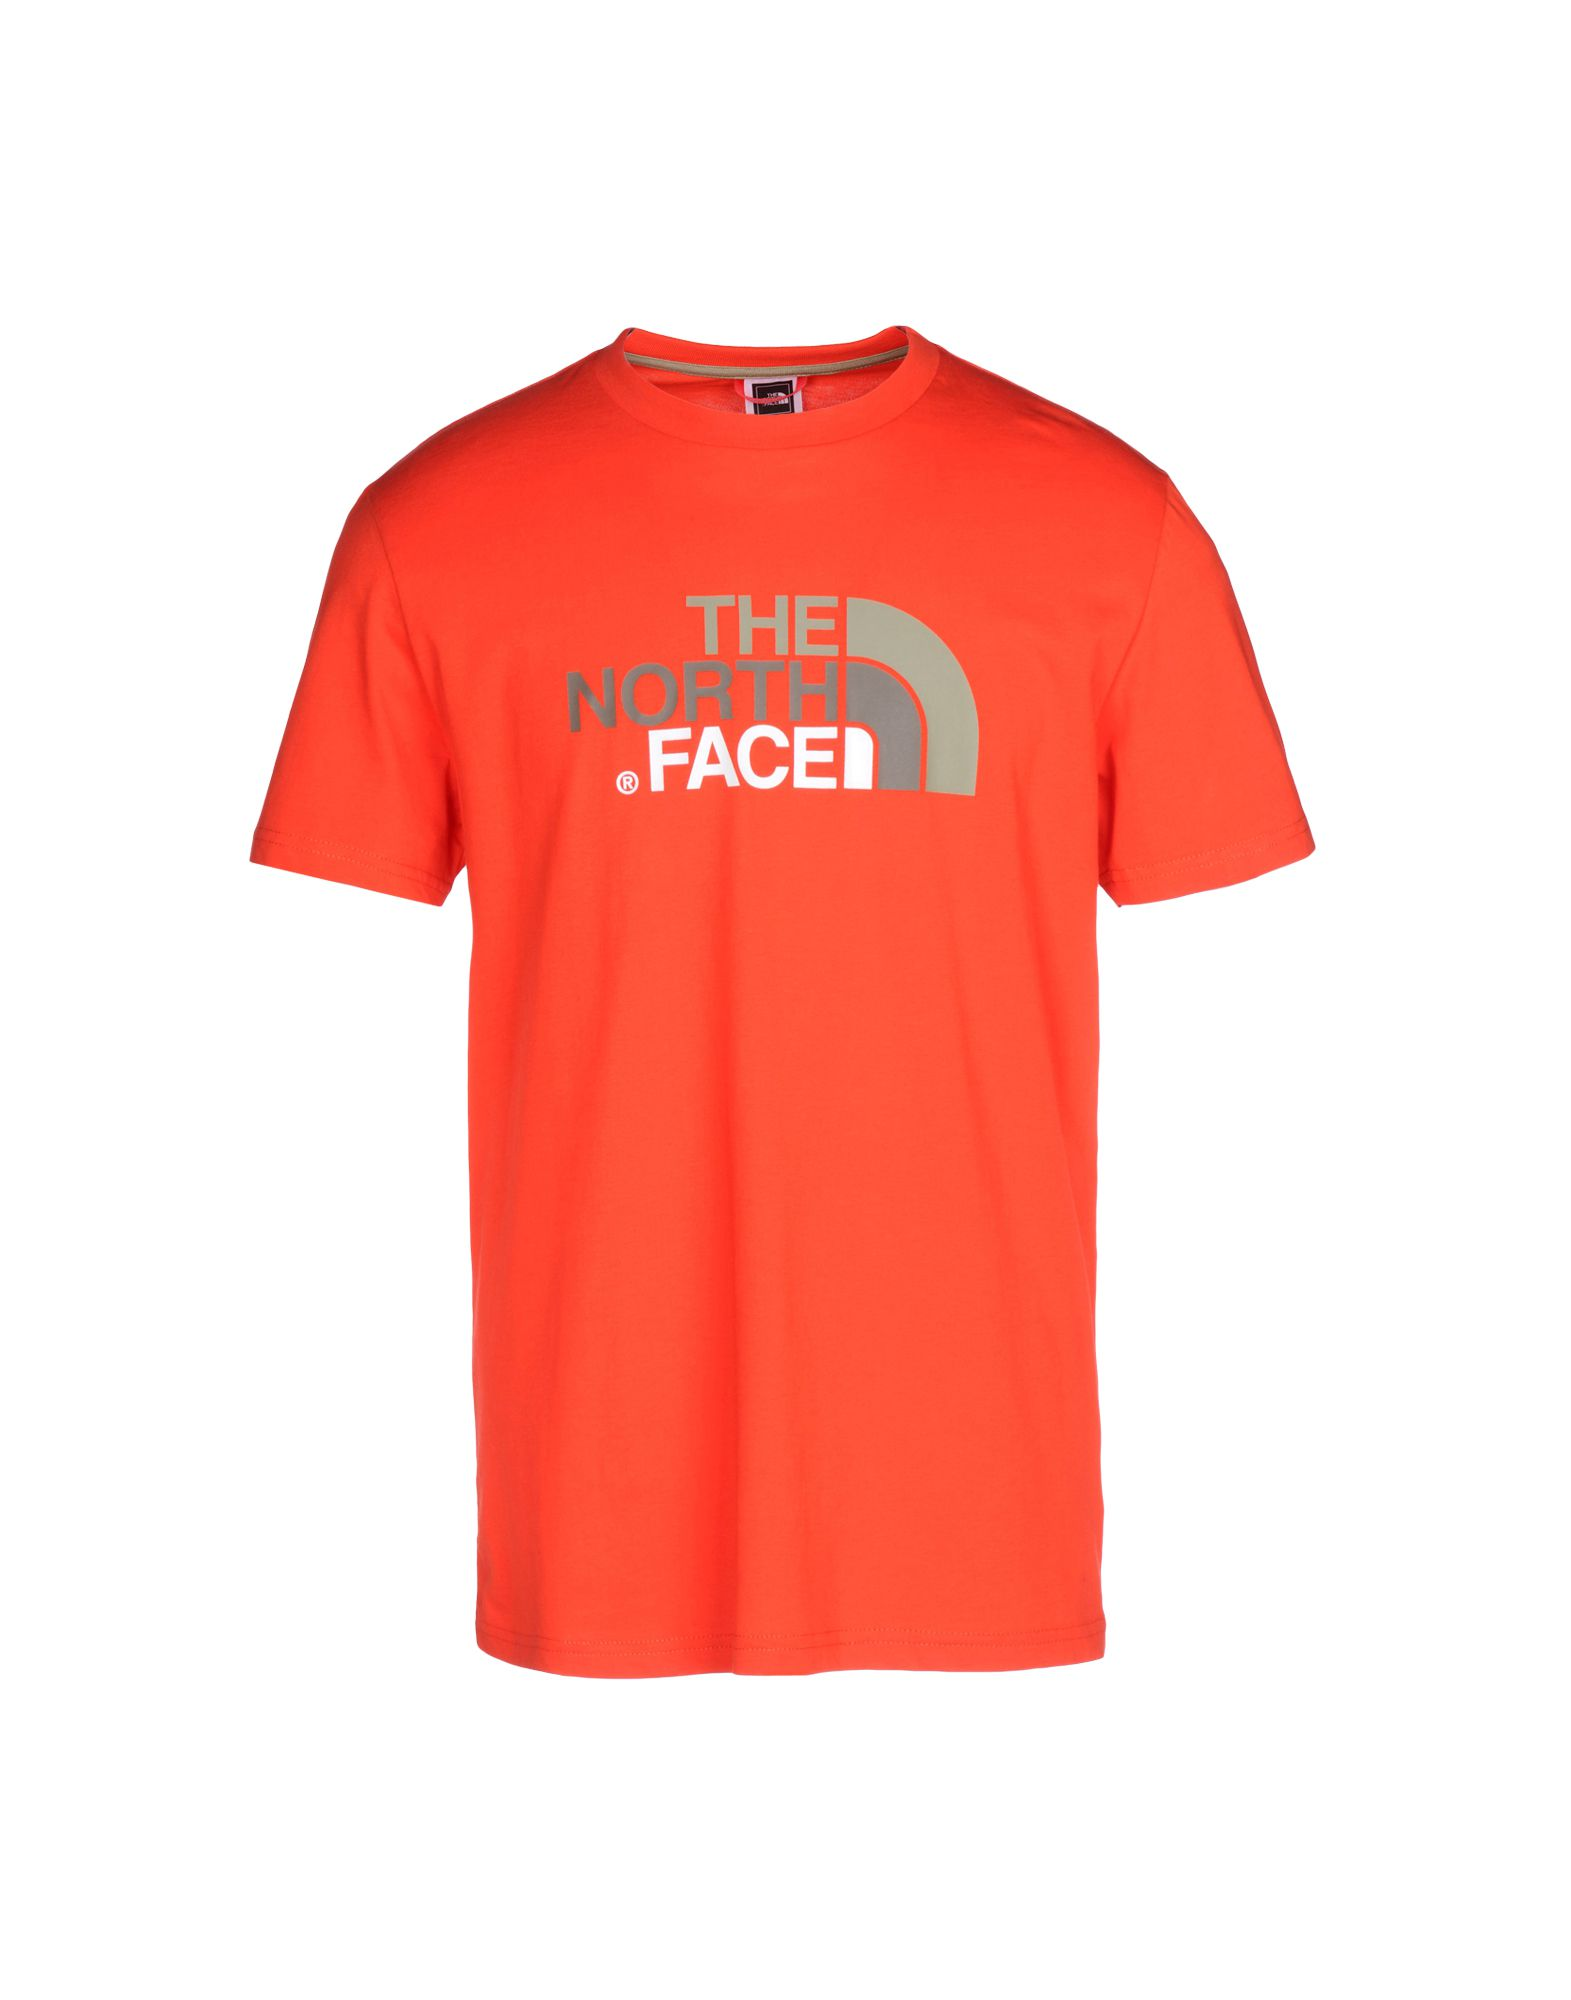 T-Shirt Sportiva The North Face M S/S Easy Tee - - Uomo - Tee 37871338IQ 09bba2